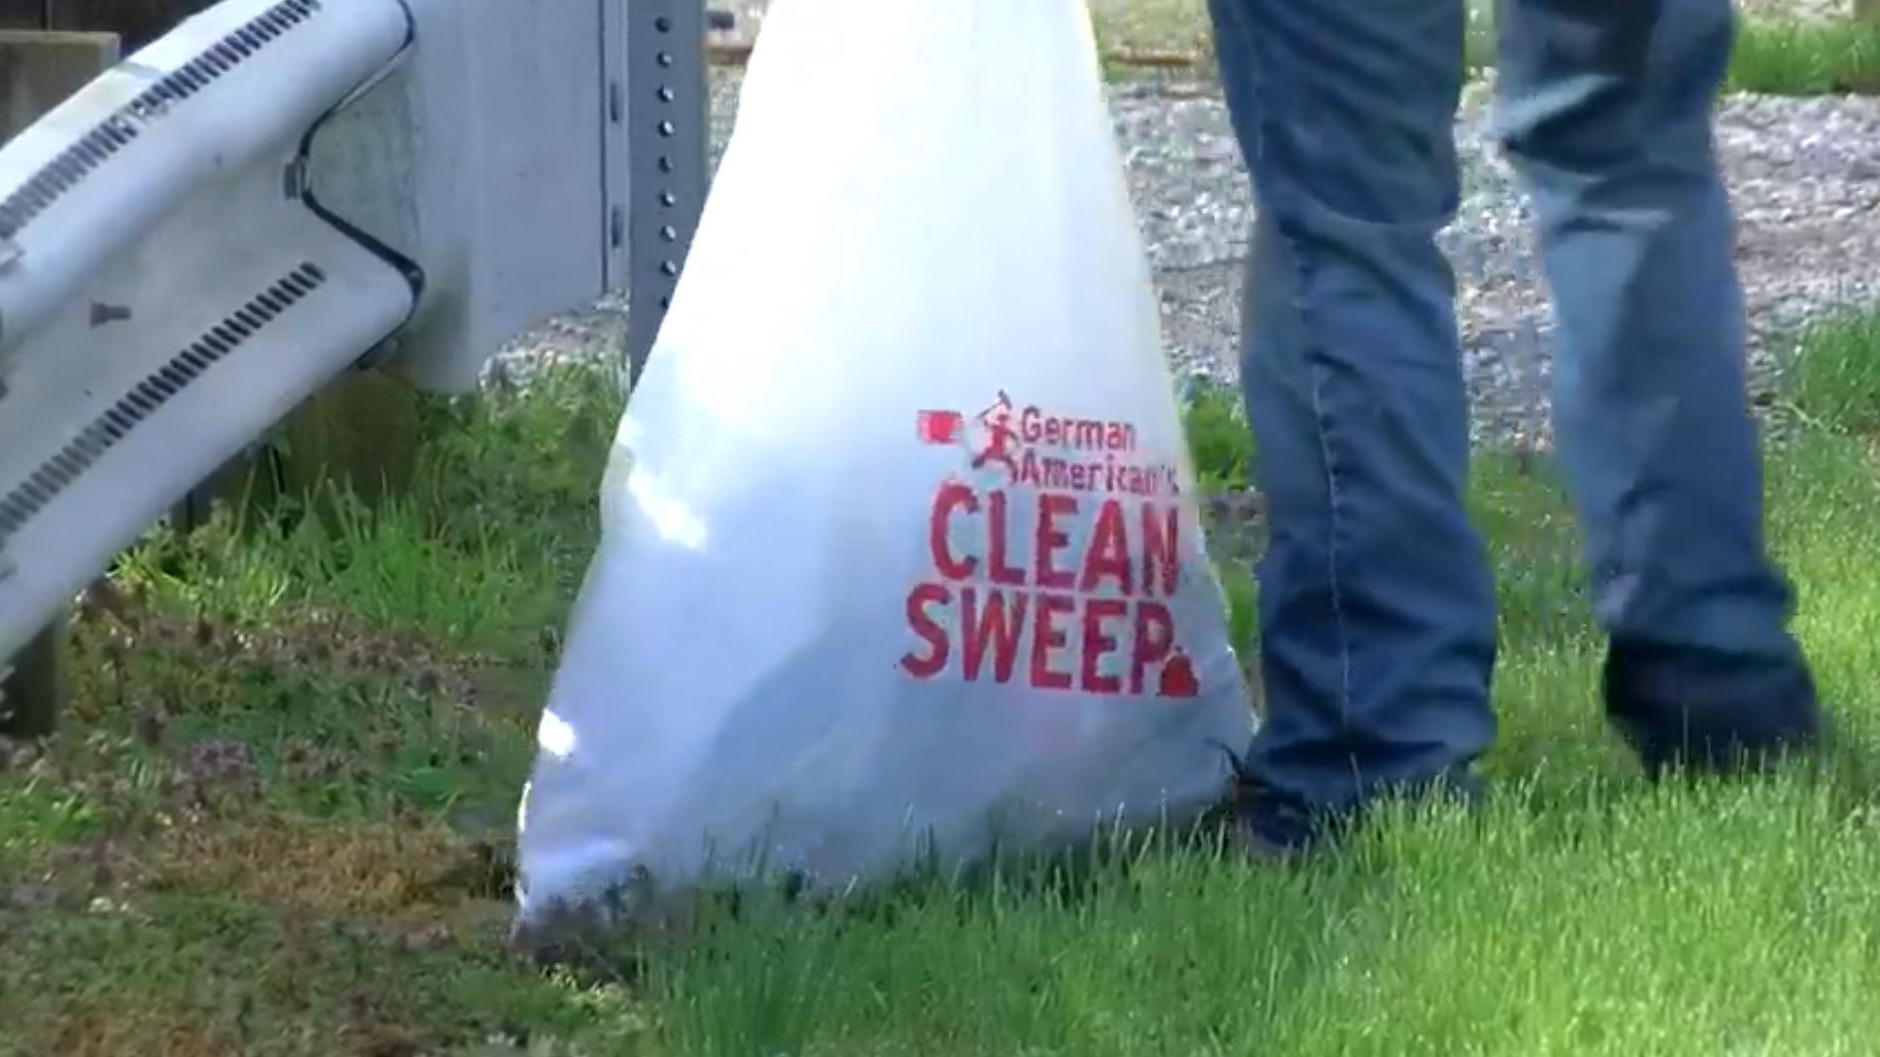 Trash bag with Clean Sweep logo